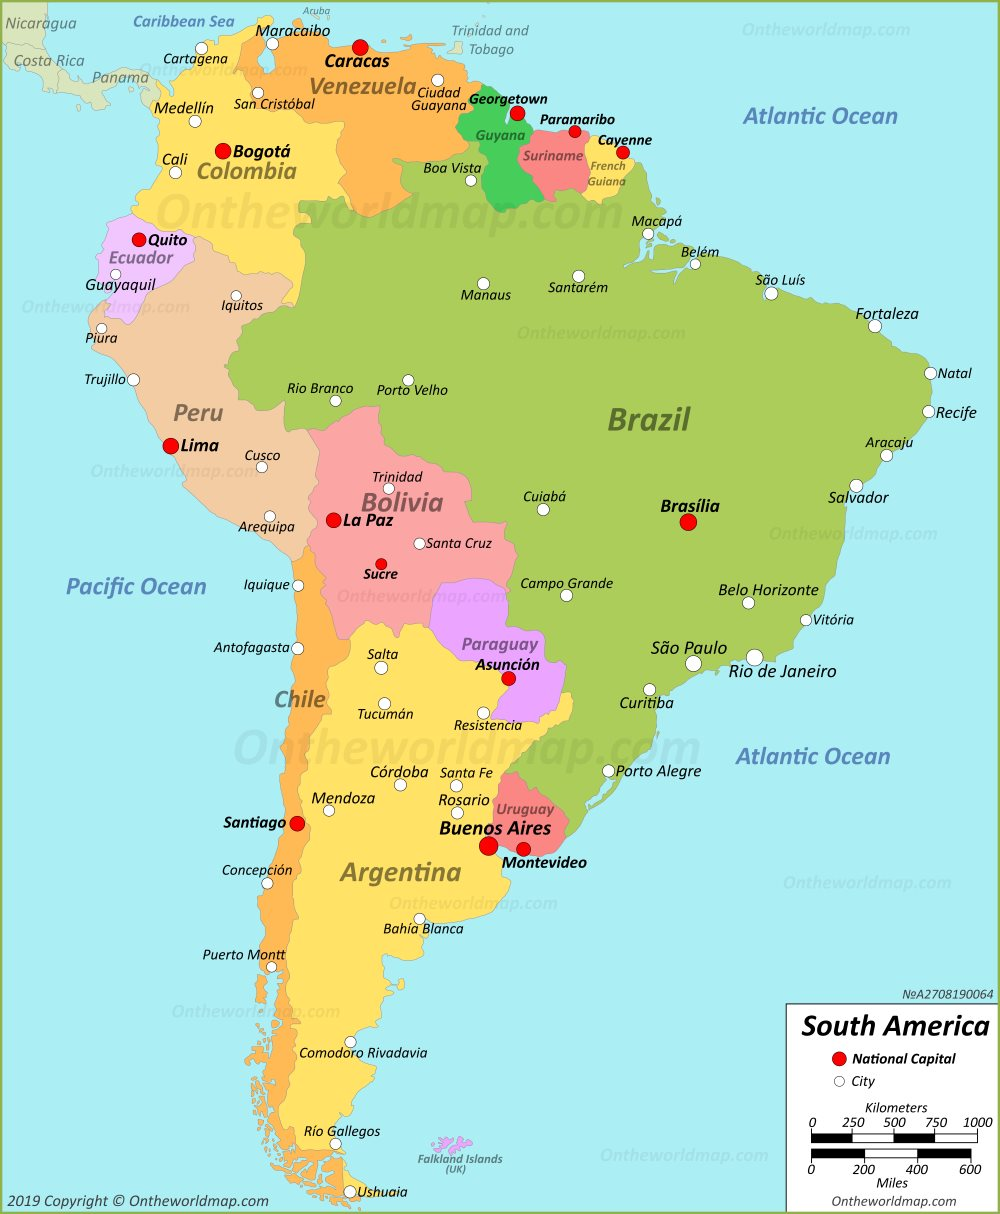 Colombia Medellin Map on map with capital of colombia, colored map of colombia, street map of medellin colombia, satellite maps colombia, map of colombia departments, political map of colombia, major river map of colombia, map of colombia small, detailed map of colombia, palace of justice colombia, map colombia only, map of colombia and united states, map of colombia with cities, lost city trek colombia, bogota colombia, map of colombia south america, 3d map of colombia, maap s colombia, map of colombia and surrounding countries, map of el bordo colombia,